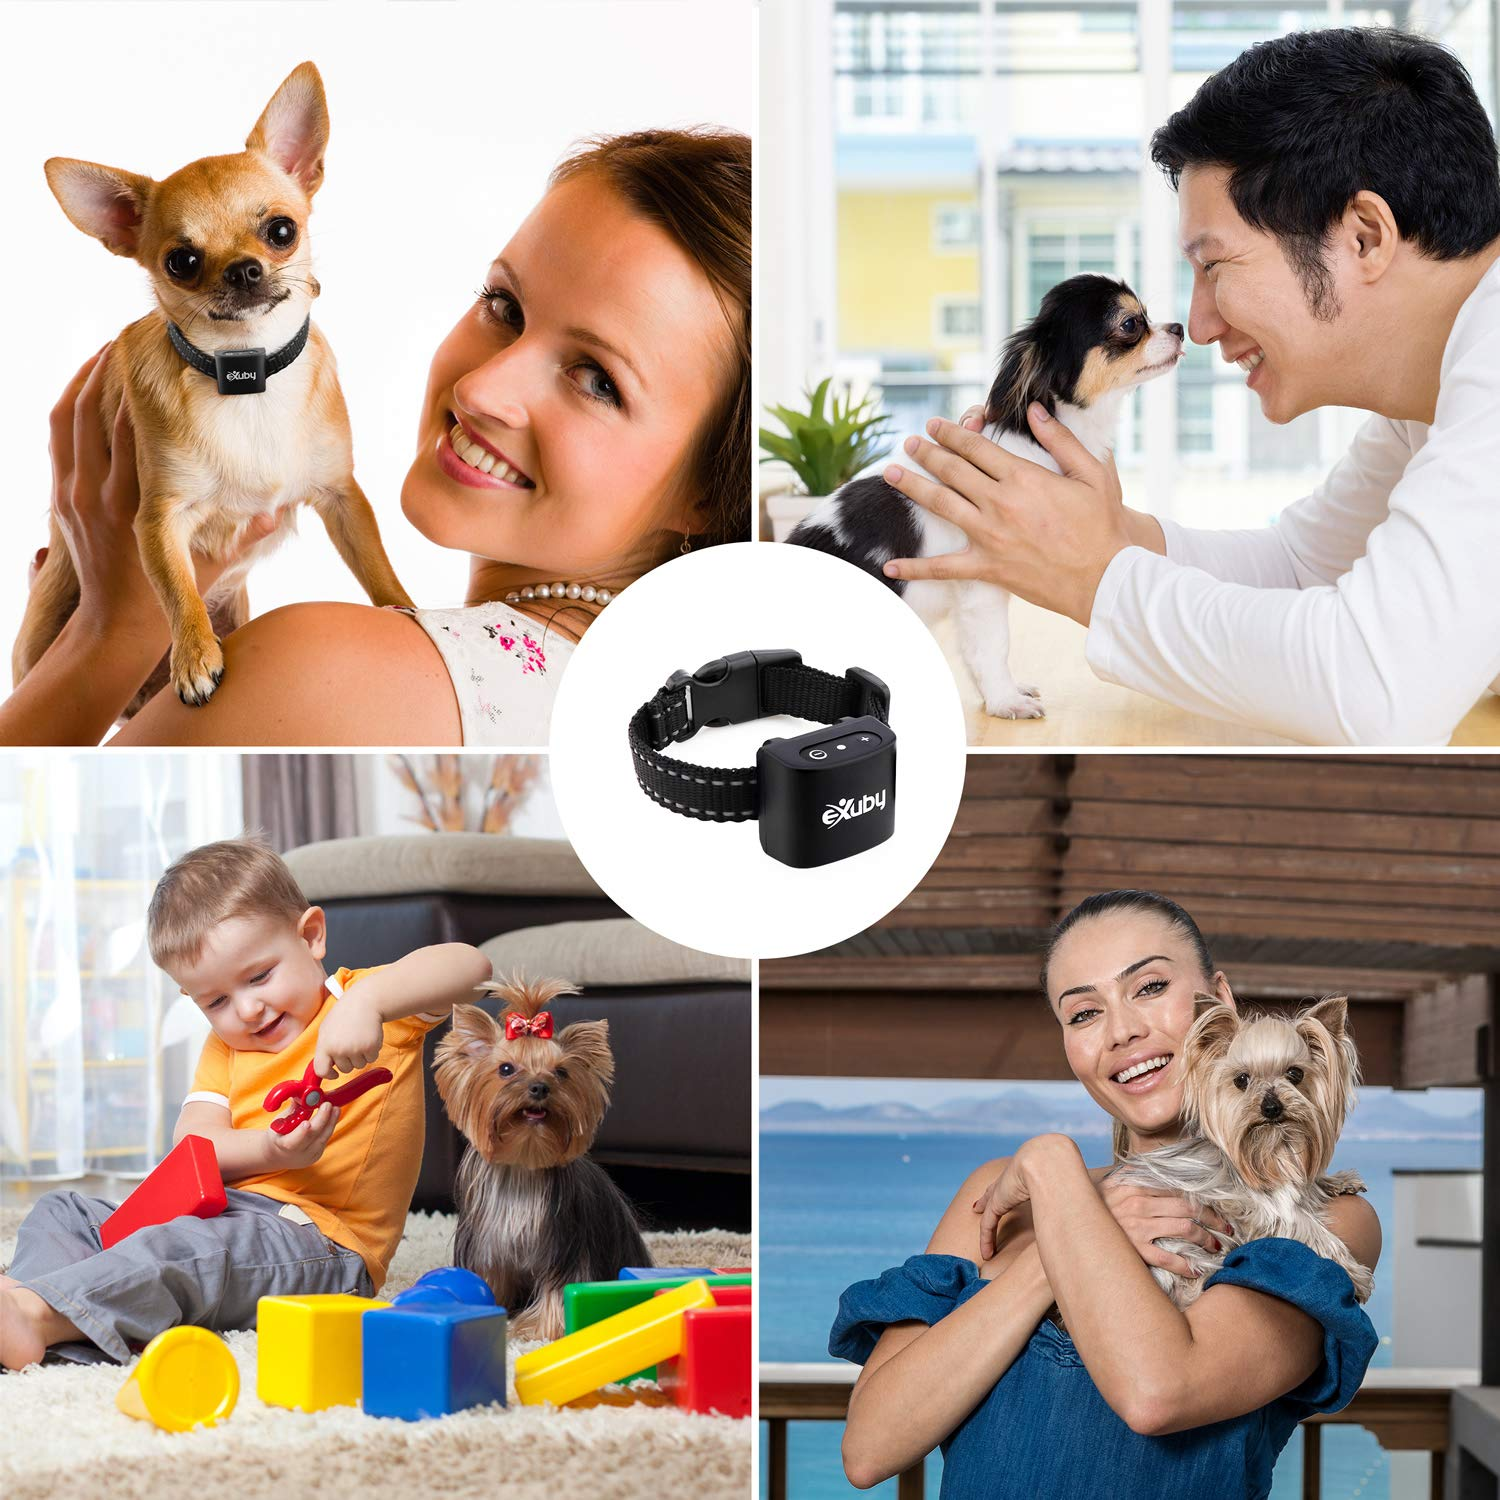 Yorkshire Only Sound /& Vibration Fits Chihuahua No Shock eXuby Pomeranian Smallest Bark Collar in The World Papillon Tiny Anti Bark Collar for Small Dogs Puppies Water Resistant